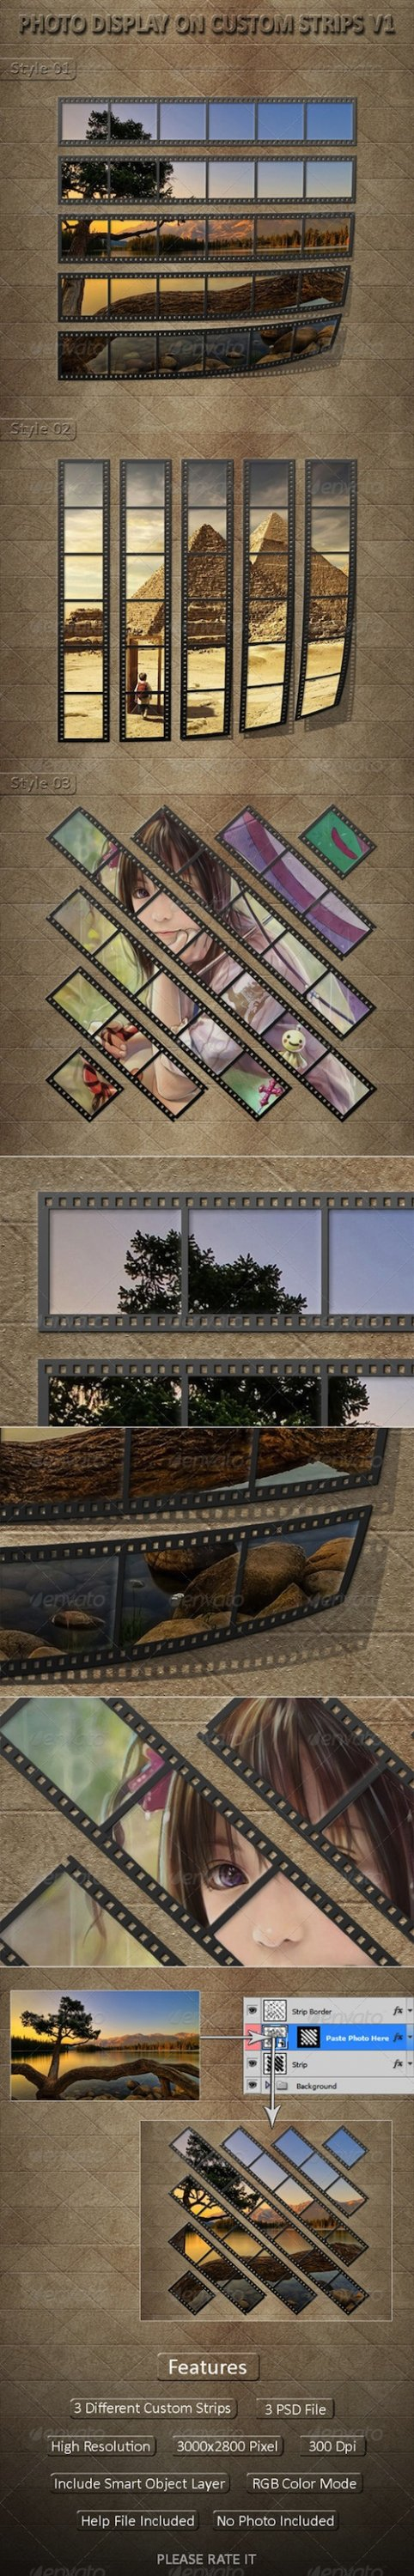 GraphicRiver - Photo Display on Custom Strips V1